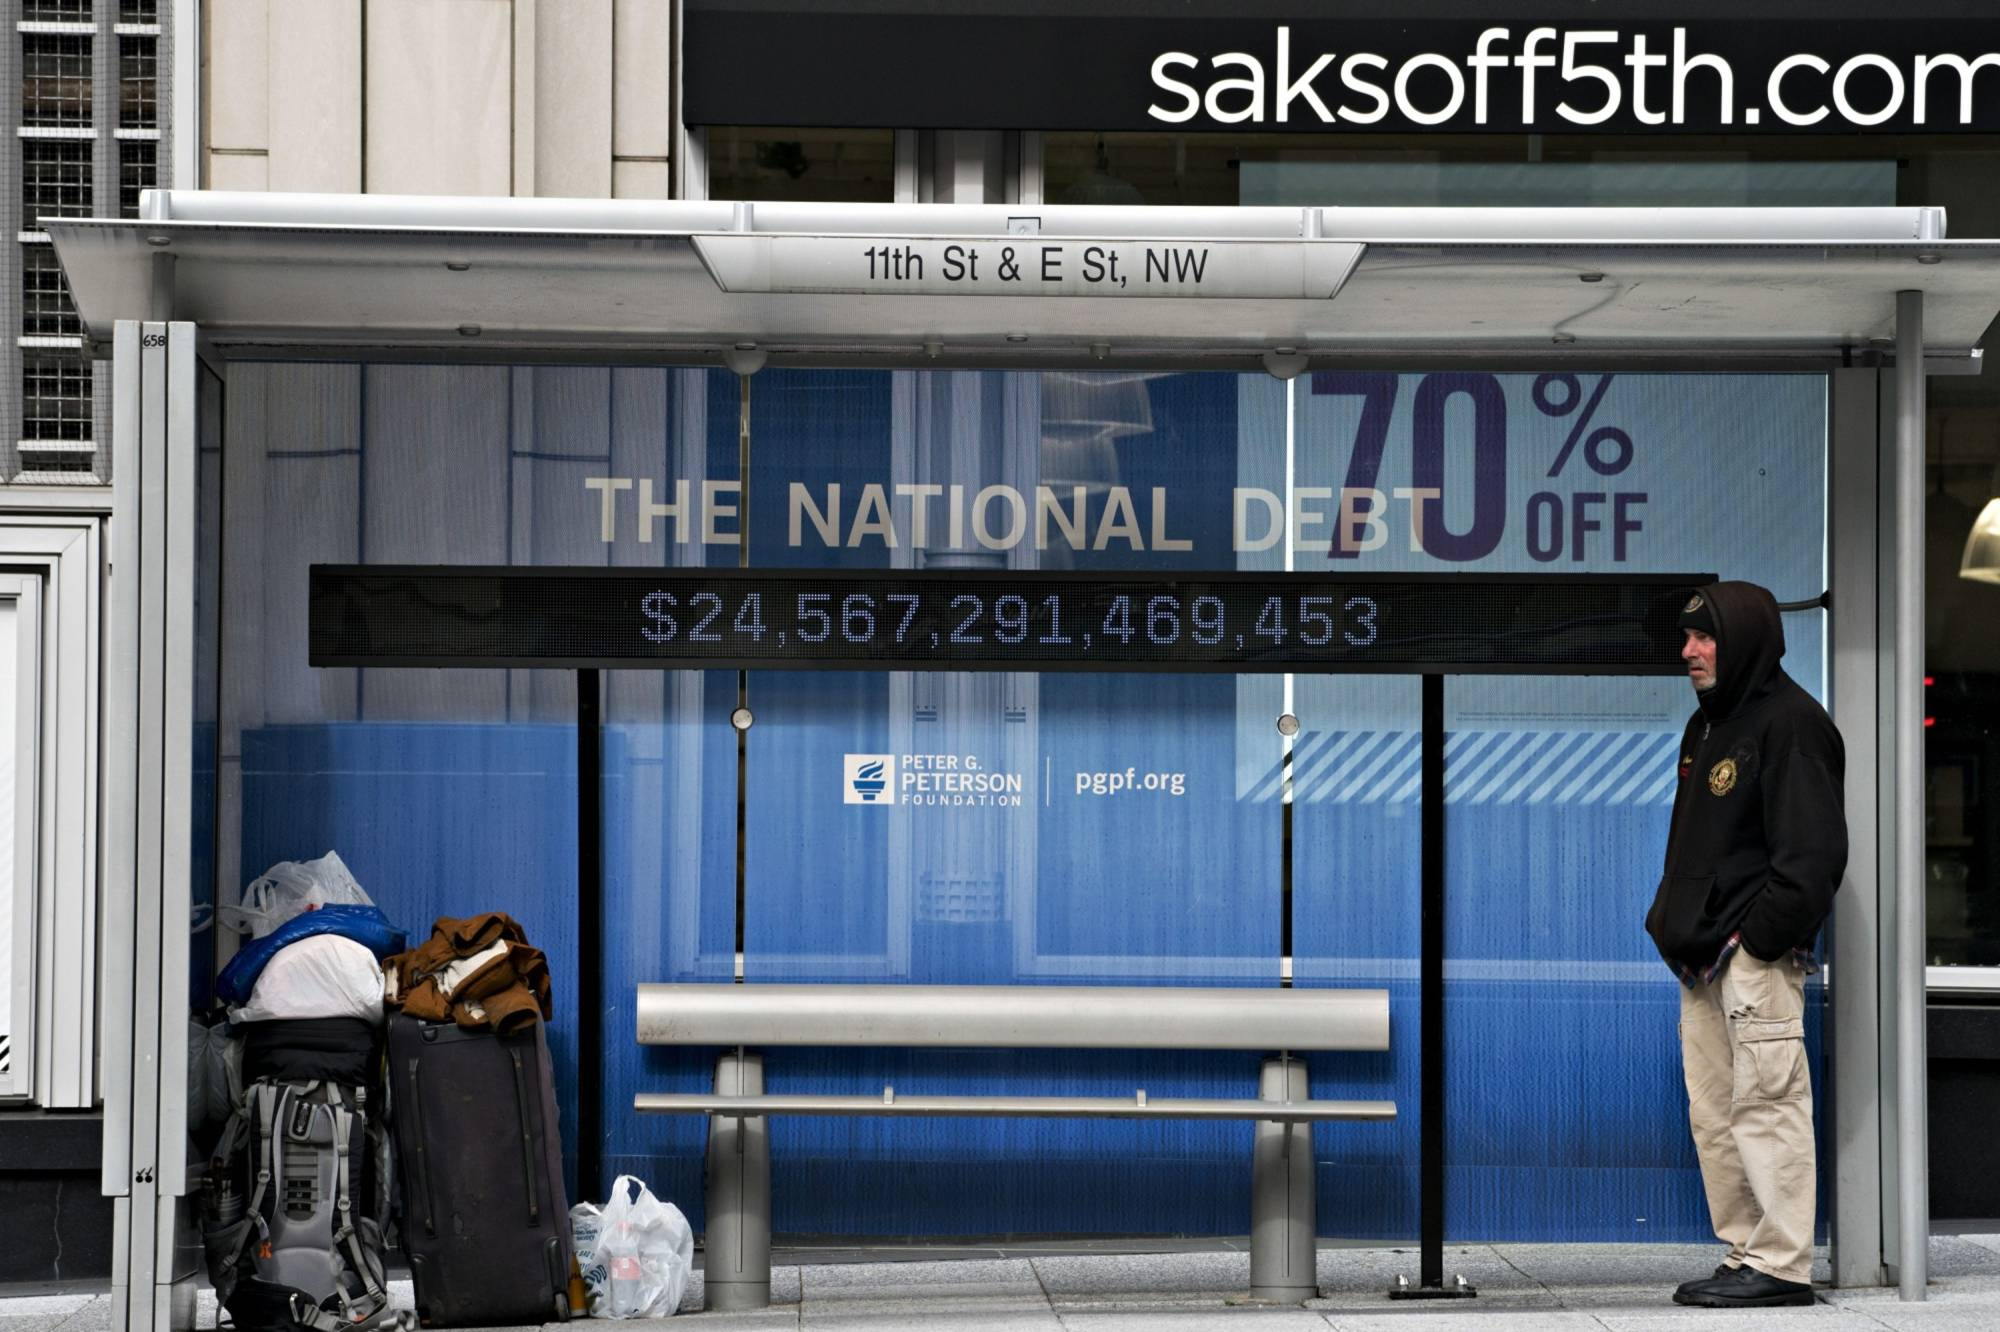 A national debt counter hangs inside a bus stop in Washington on April 23, 2020. | BLOOMBERG